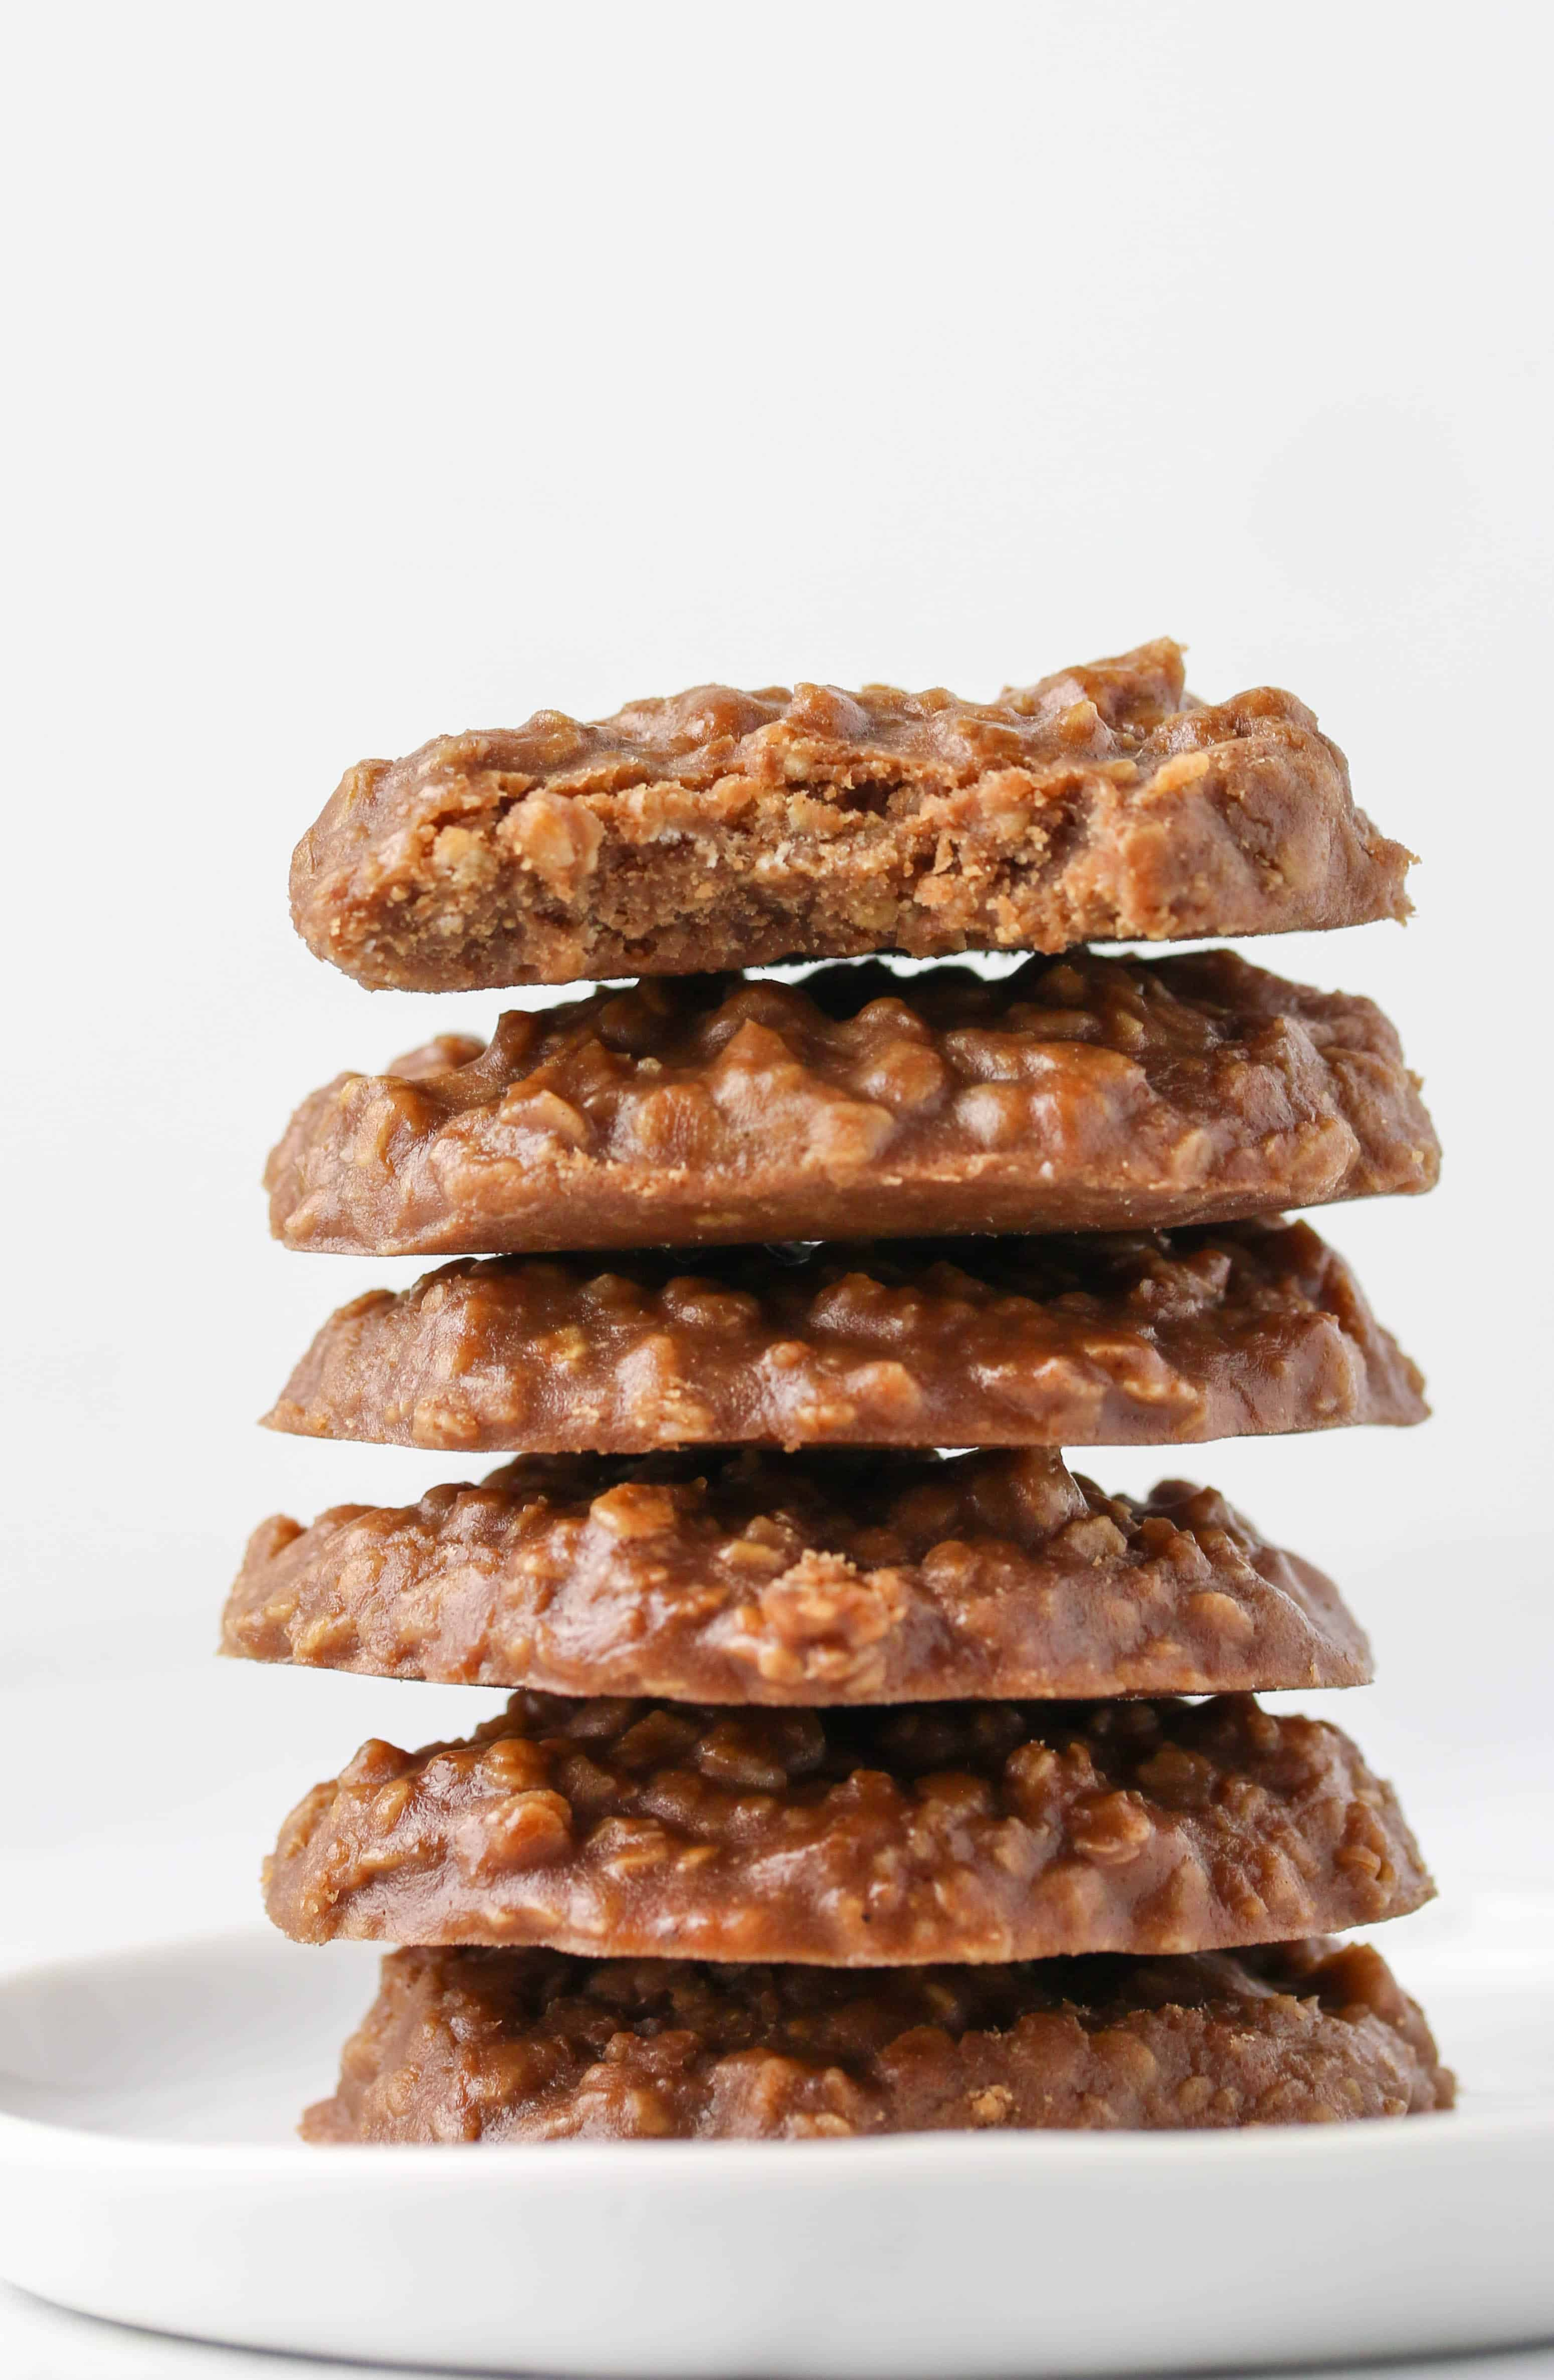 Stack of no bake cookies on plate.